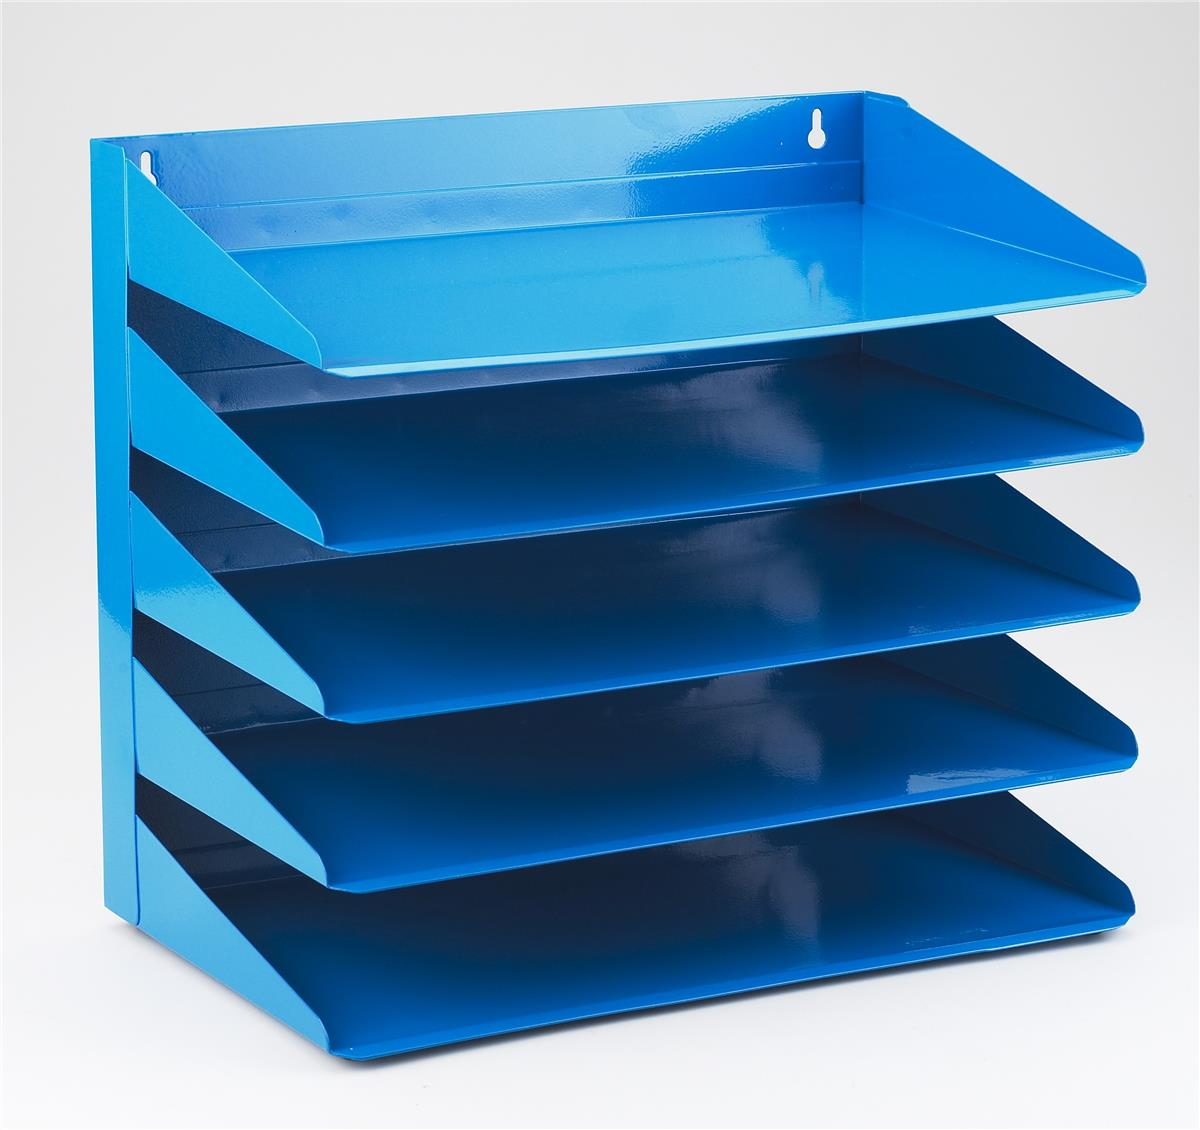 Image for Avery Letter Rack 5-Tier Steel W380xD230xH335mm Blue Ref 605SBLUE